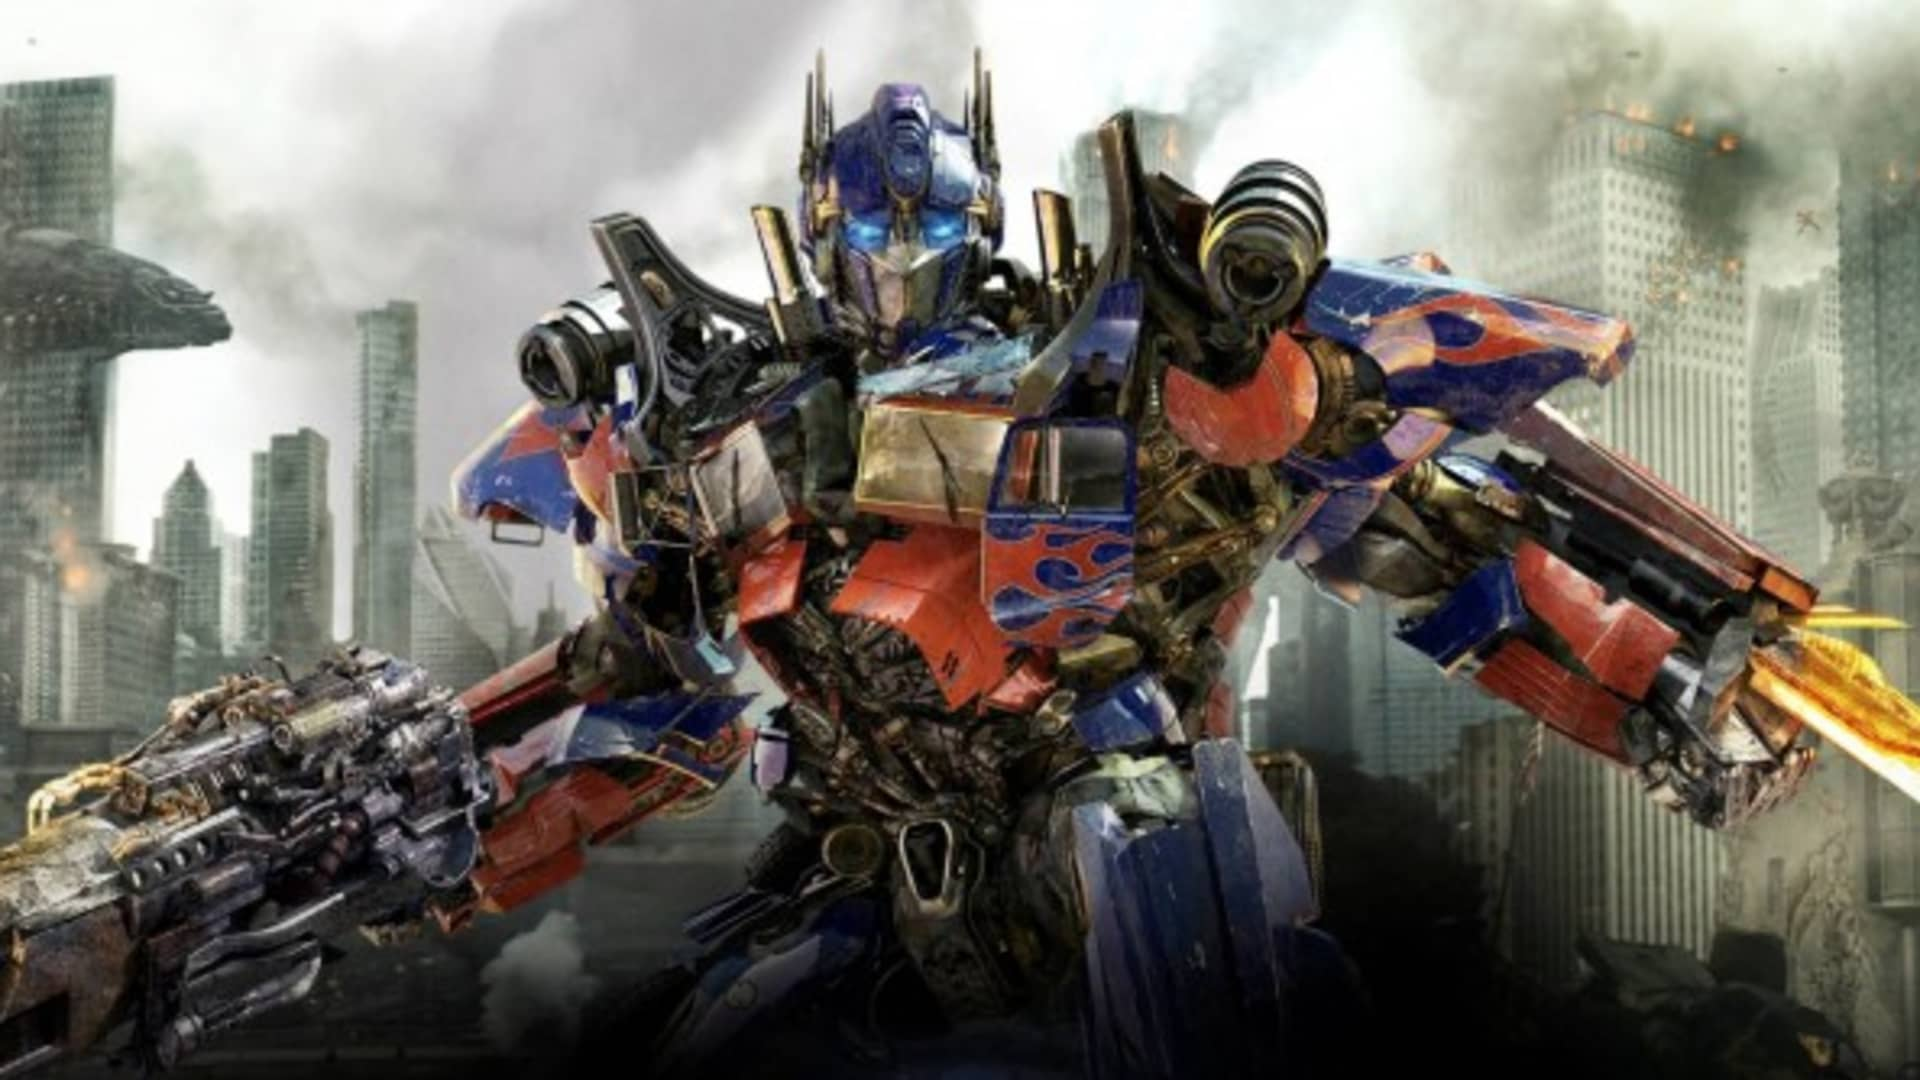 Transformers franchise